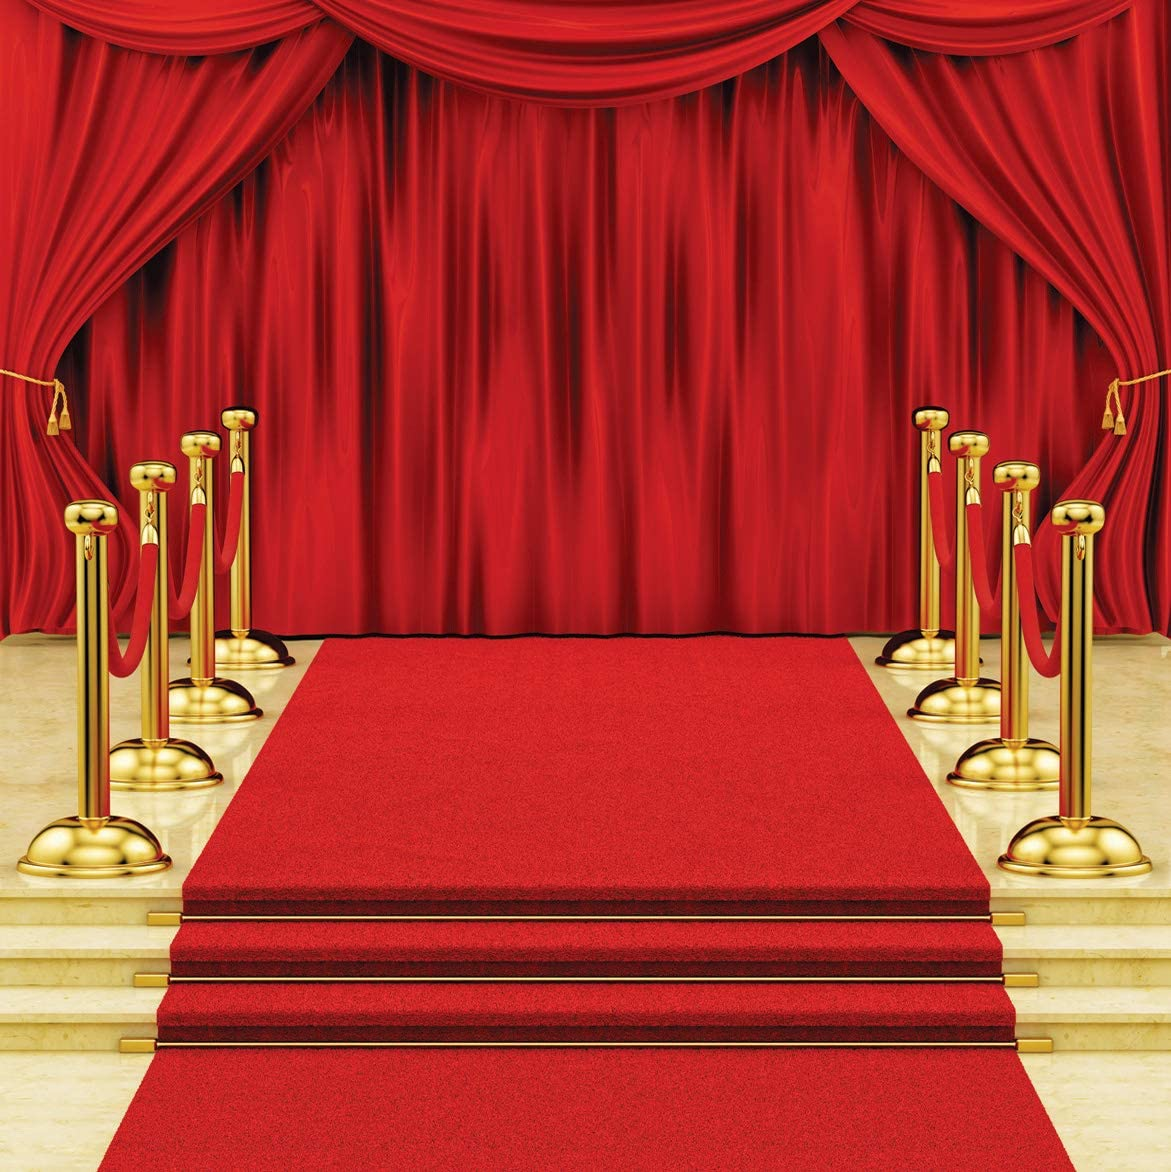 Amazon Com Sjoloon 10x10ft Red Carpet Photography Backdrop Red Curtain Background Hollywood Star Red Carpet Photo Background Vinyl Studio Props 11411 Camera Photo